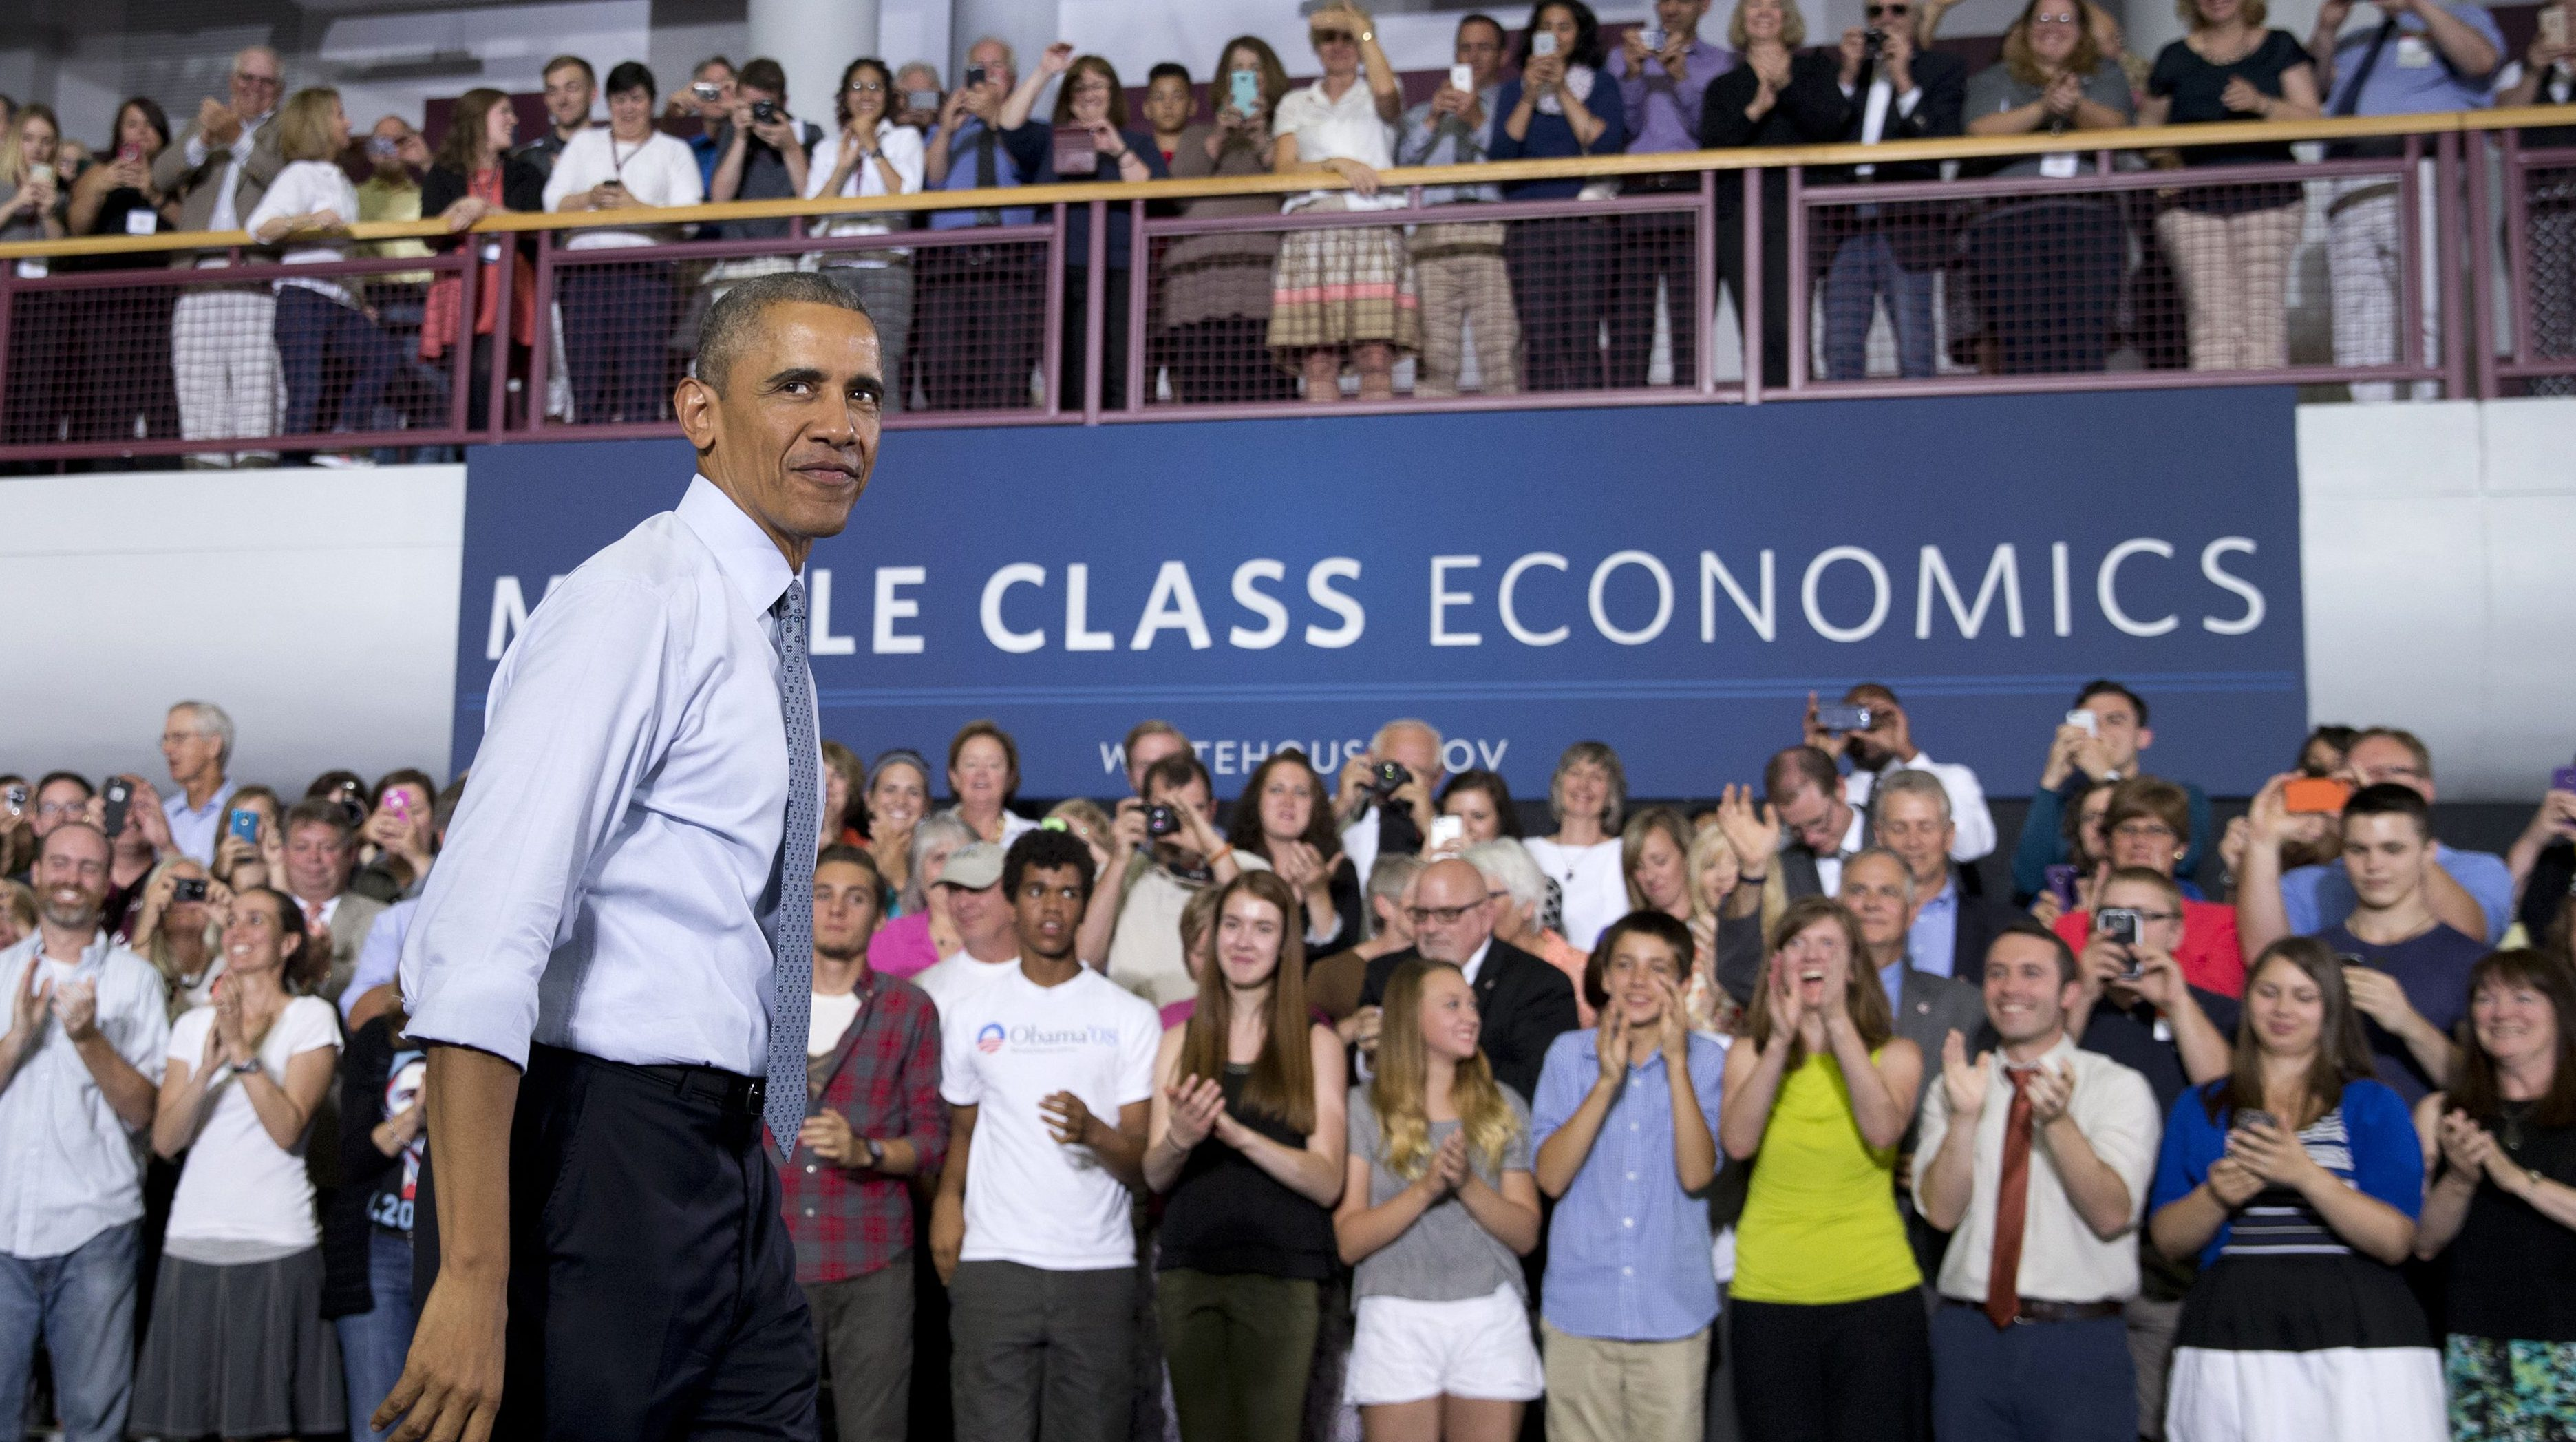 President Barack Obama looks out over the audience after speaking at the University of Wisconsin at La Crosse, in La Crosse, Wis., Thursday, July 2, 2015, about the economy and to promote a proposed Labor Department rule that would make more workers eligible for overtime.